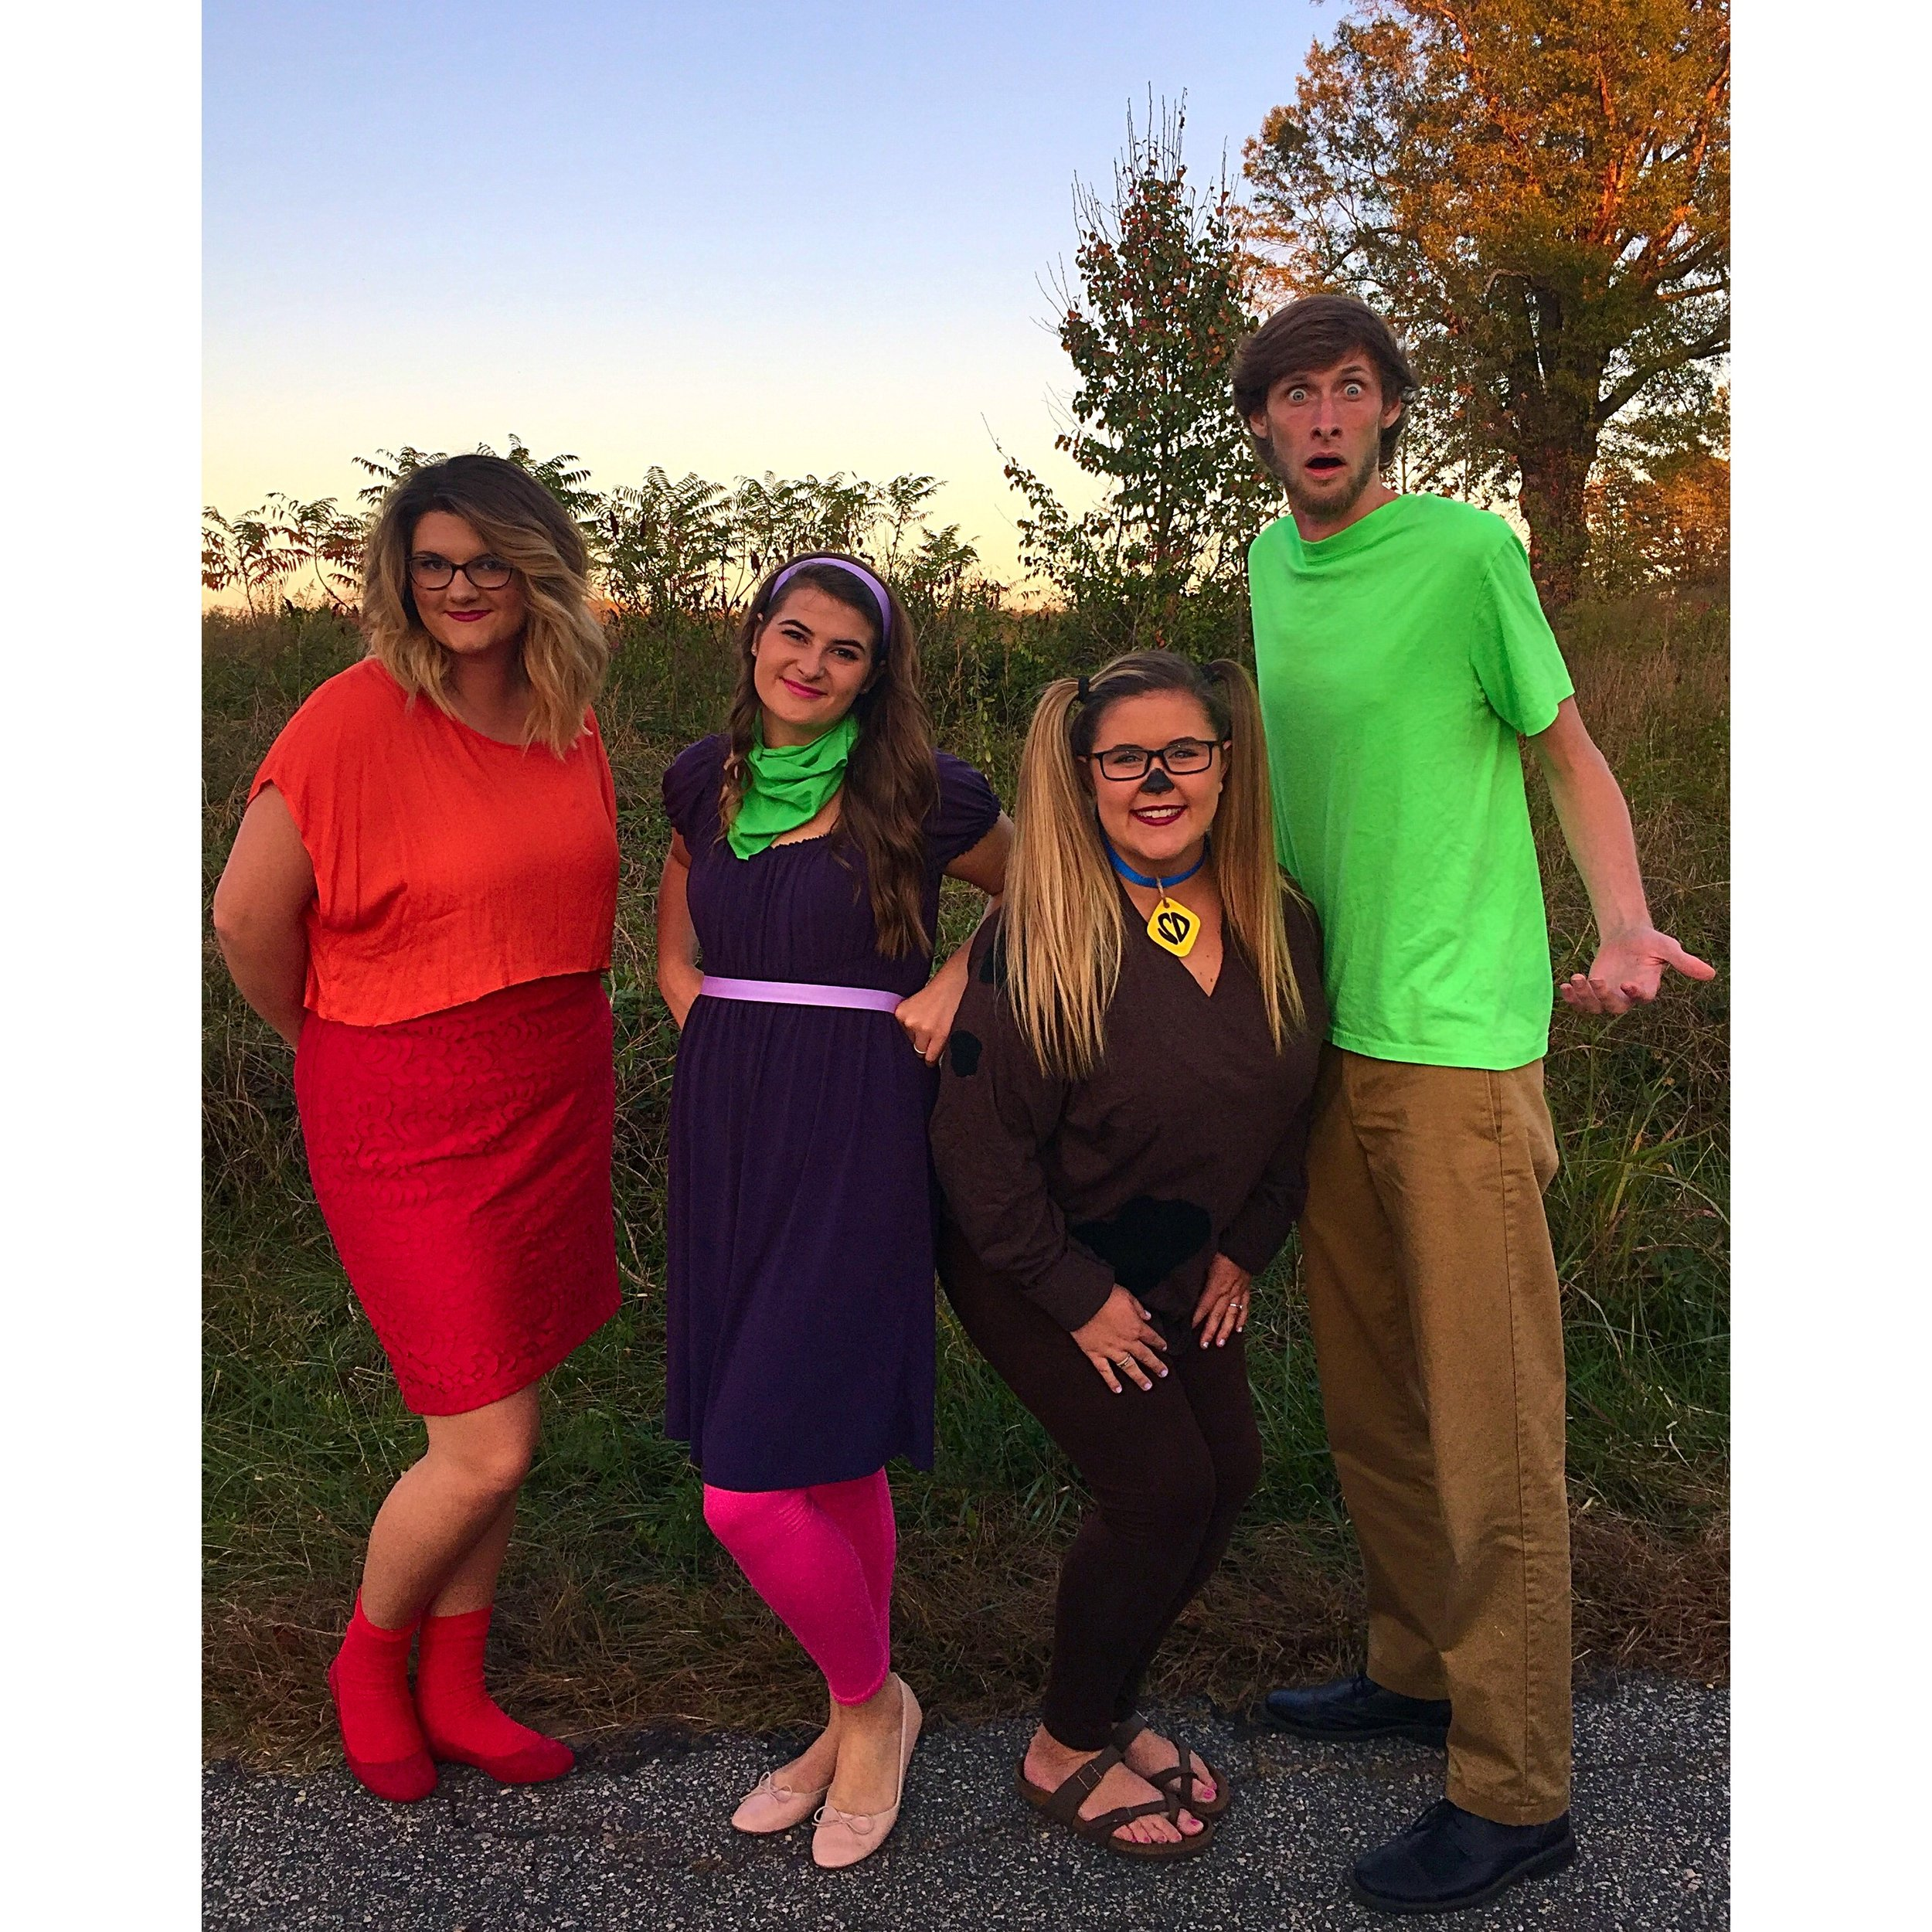 Emily Jenkins (junior), Libby Smith (sophomore), Cameron Burroughs (junior), and Cody Pendarvis (junior) dressing as their favorite cartoon characters from Scooby Doo.